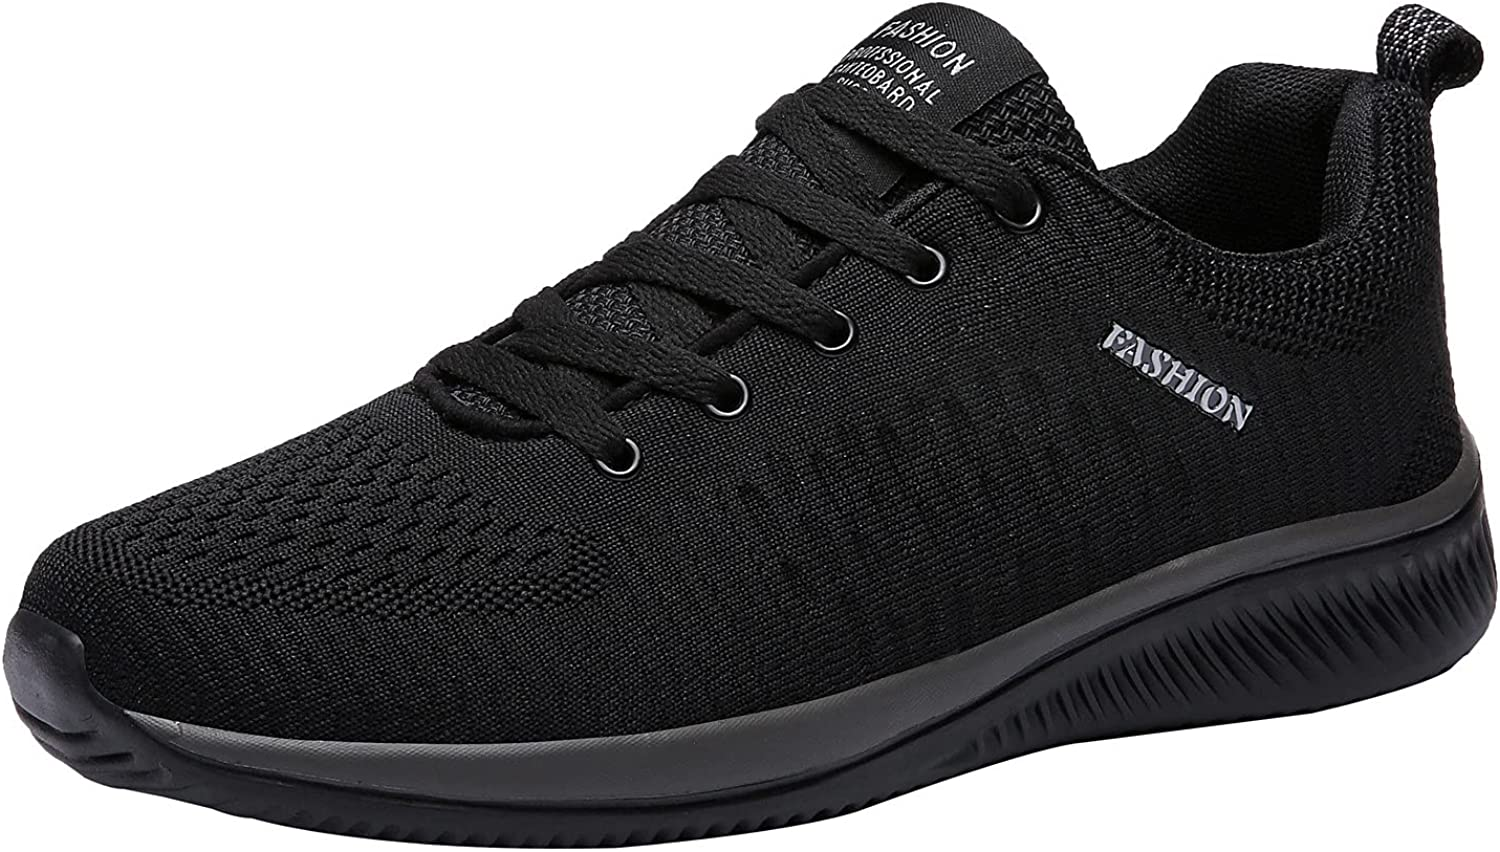 Shije Unisex Sneakers Outdoor Mesh Tennis Athletic Shoes Walking Hiking Shoes for Gym Fitness